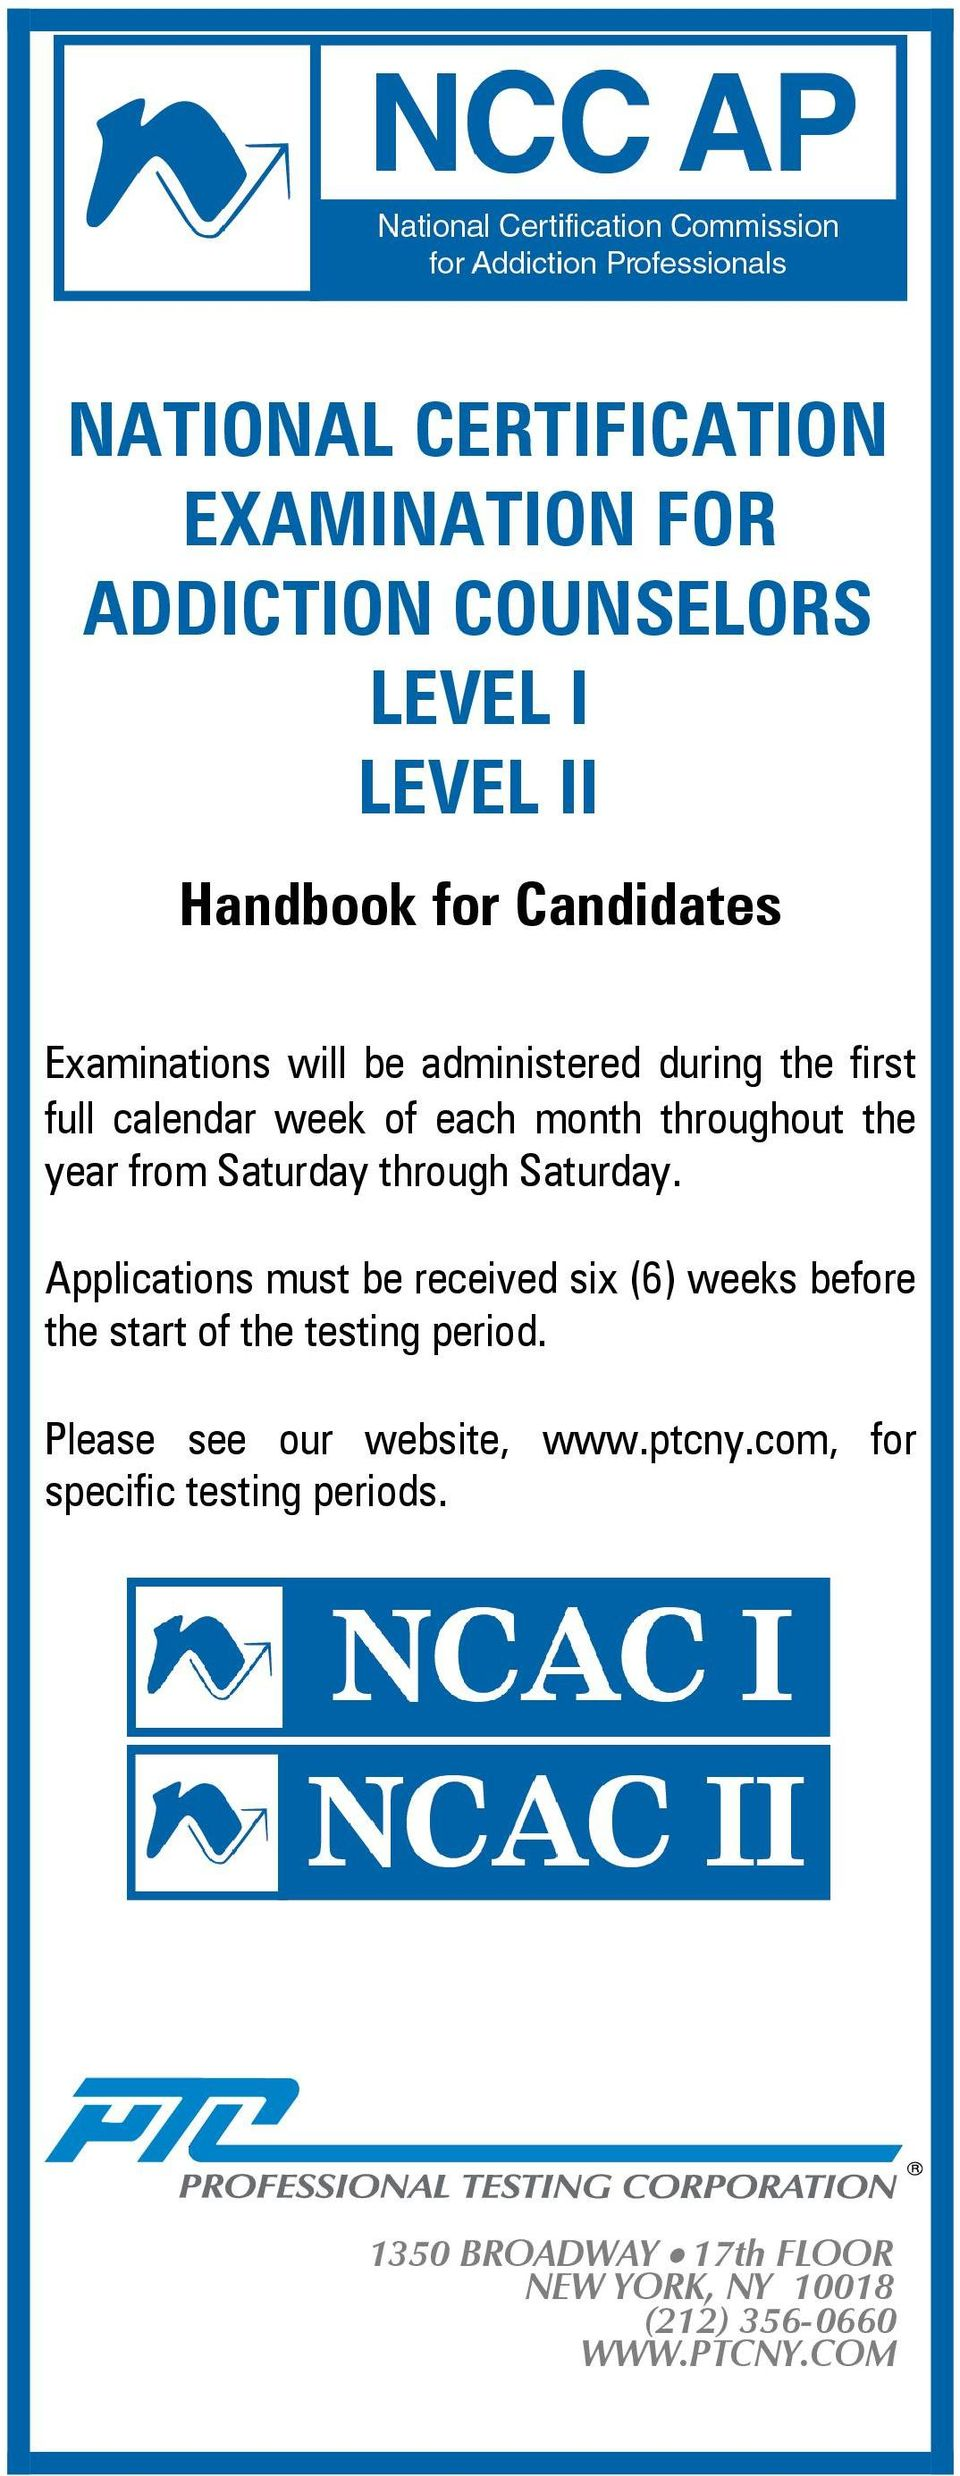 Saturday. Applications must be received six (6) weeks before the start of the testing period.